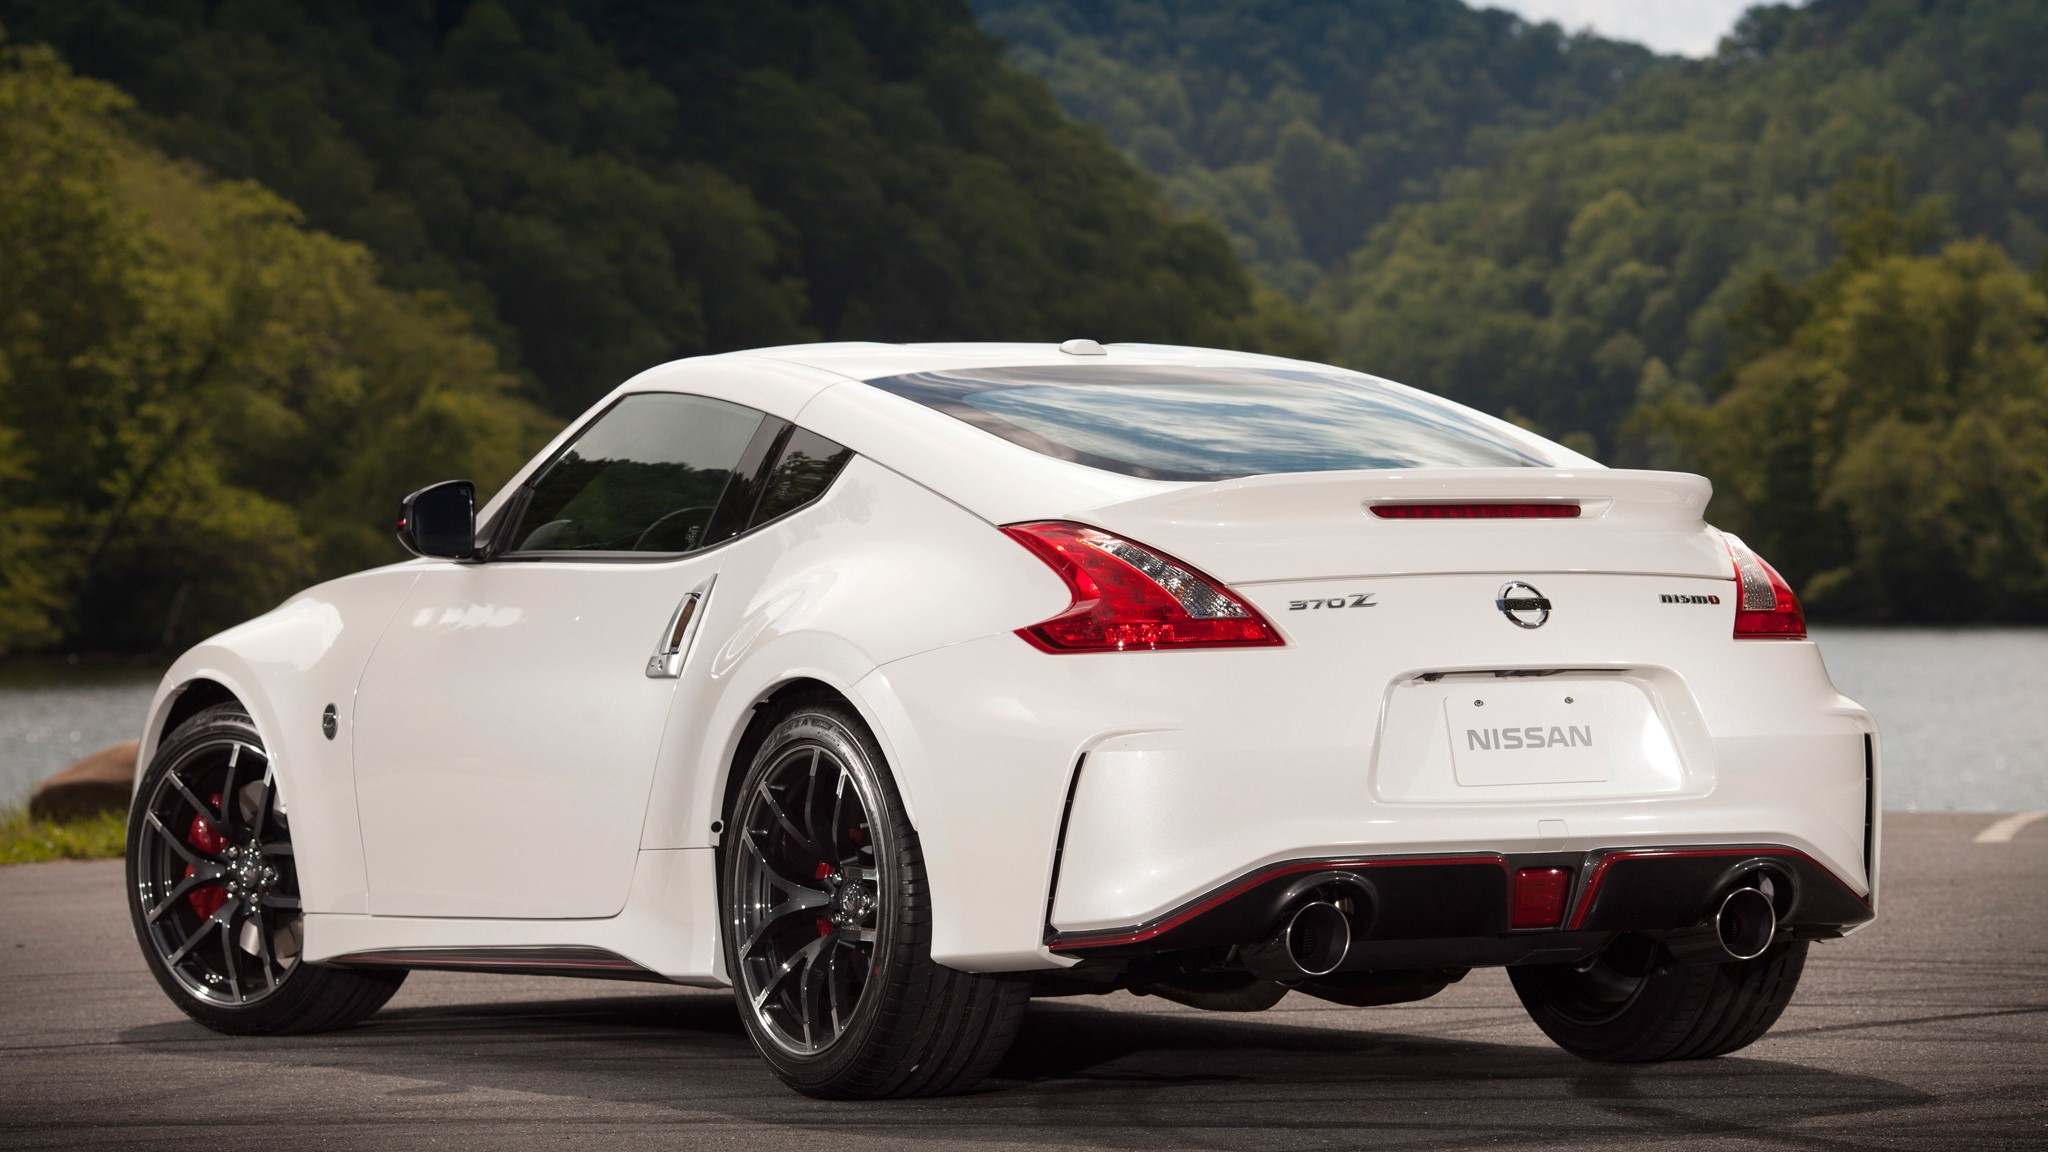 Nissan 370Z NISMO Coupe Rear View